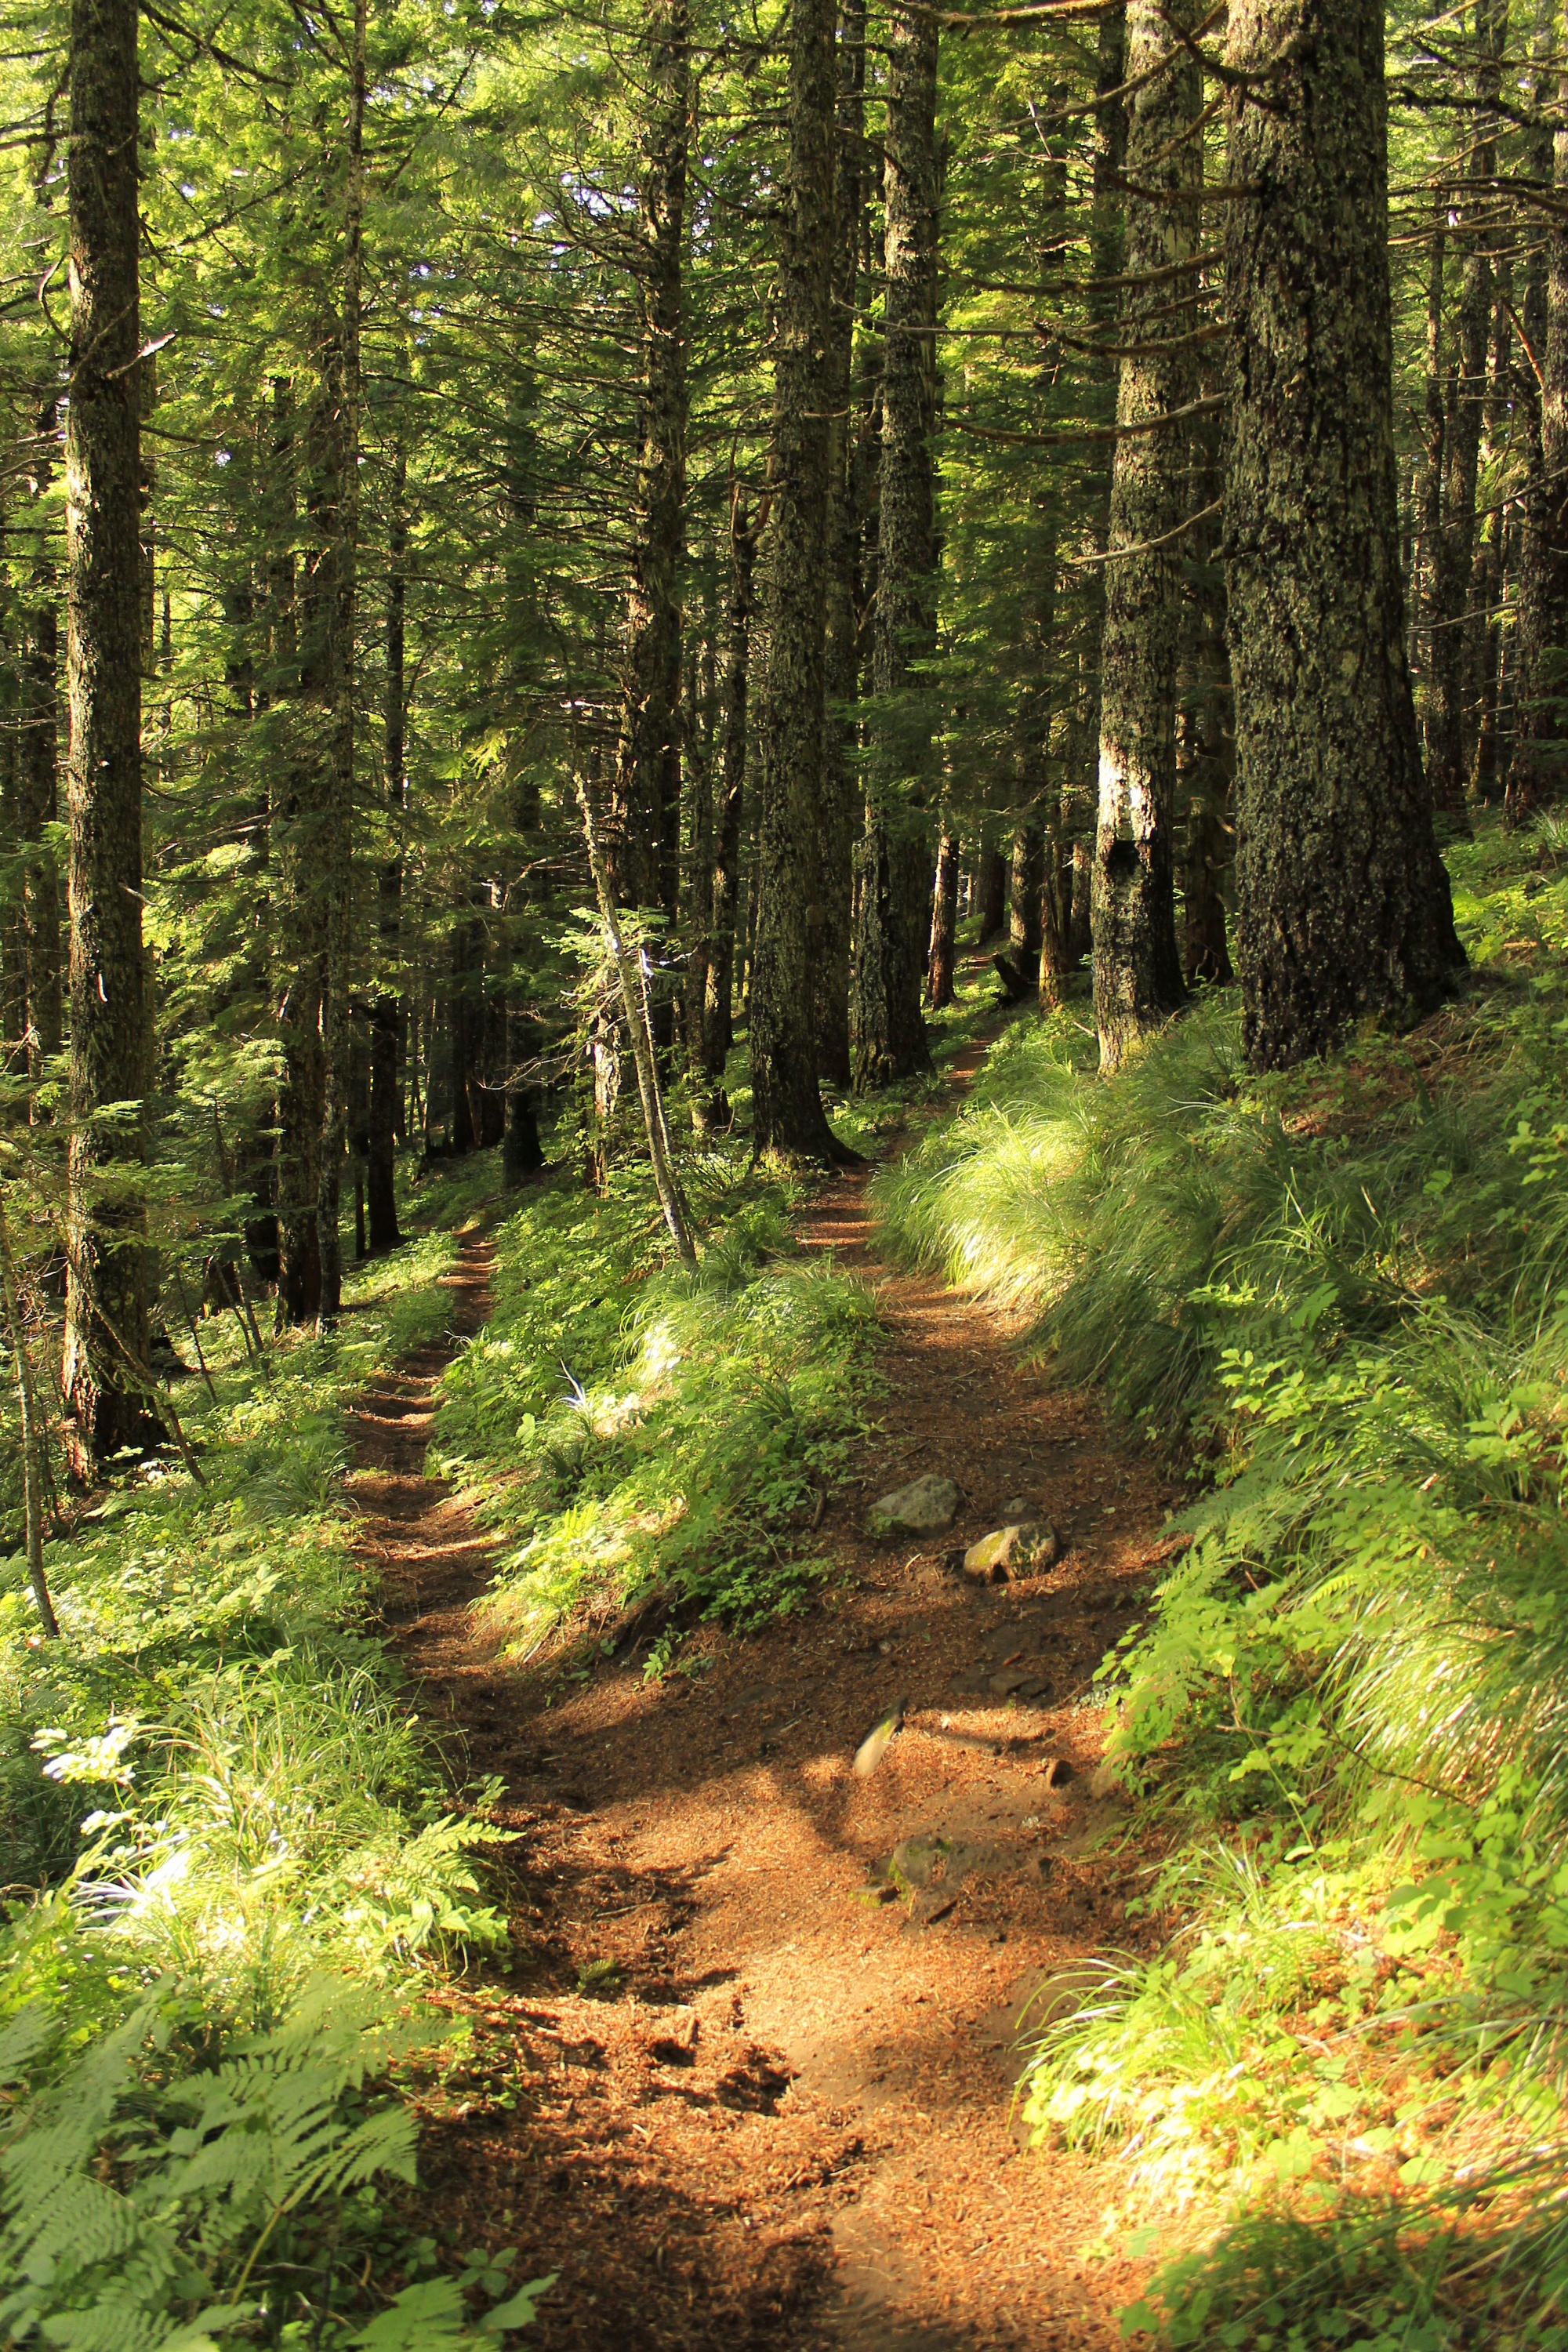 Two trails diverge on the slopes of Tumala Mountain.